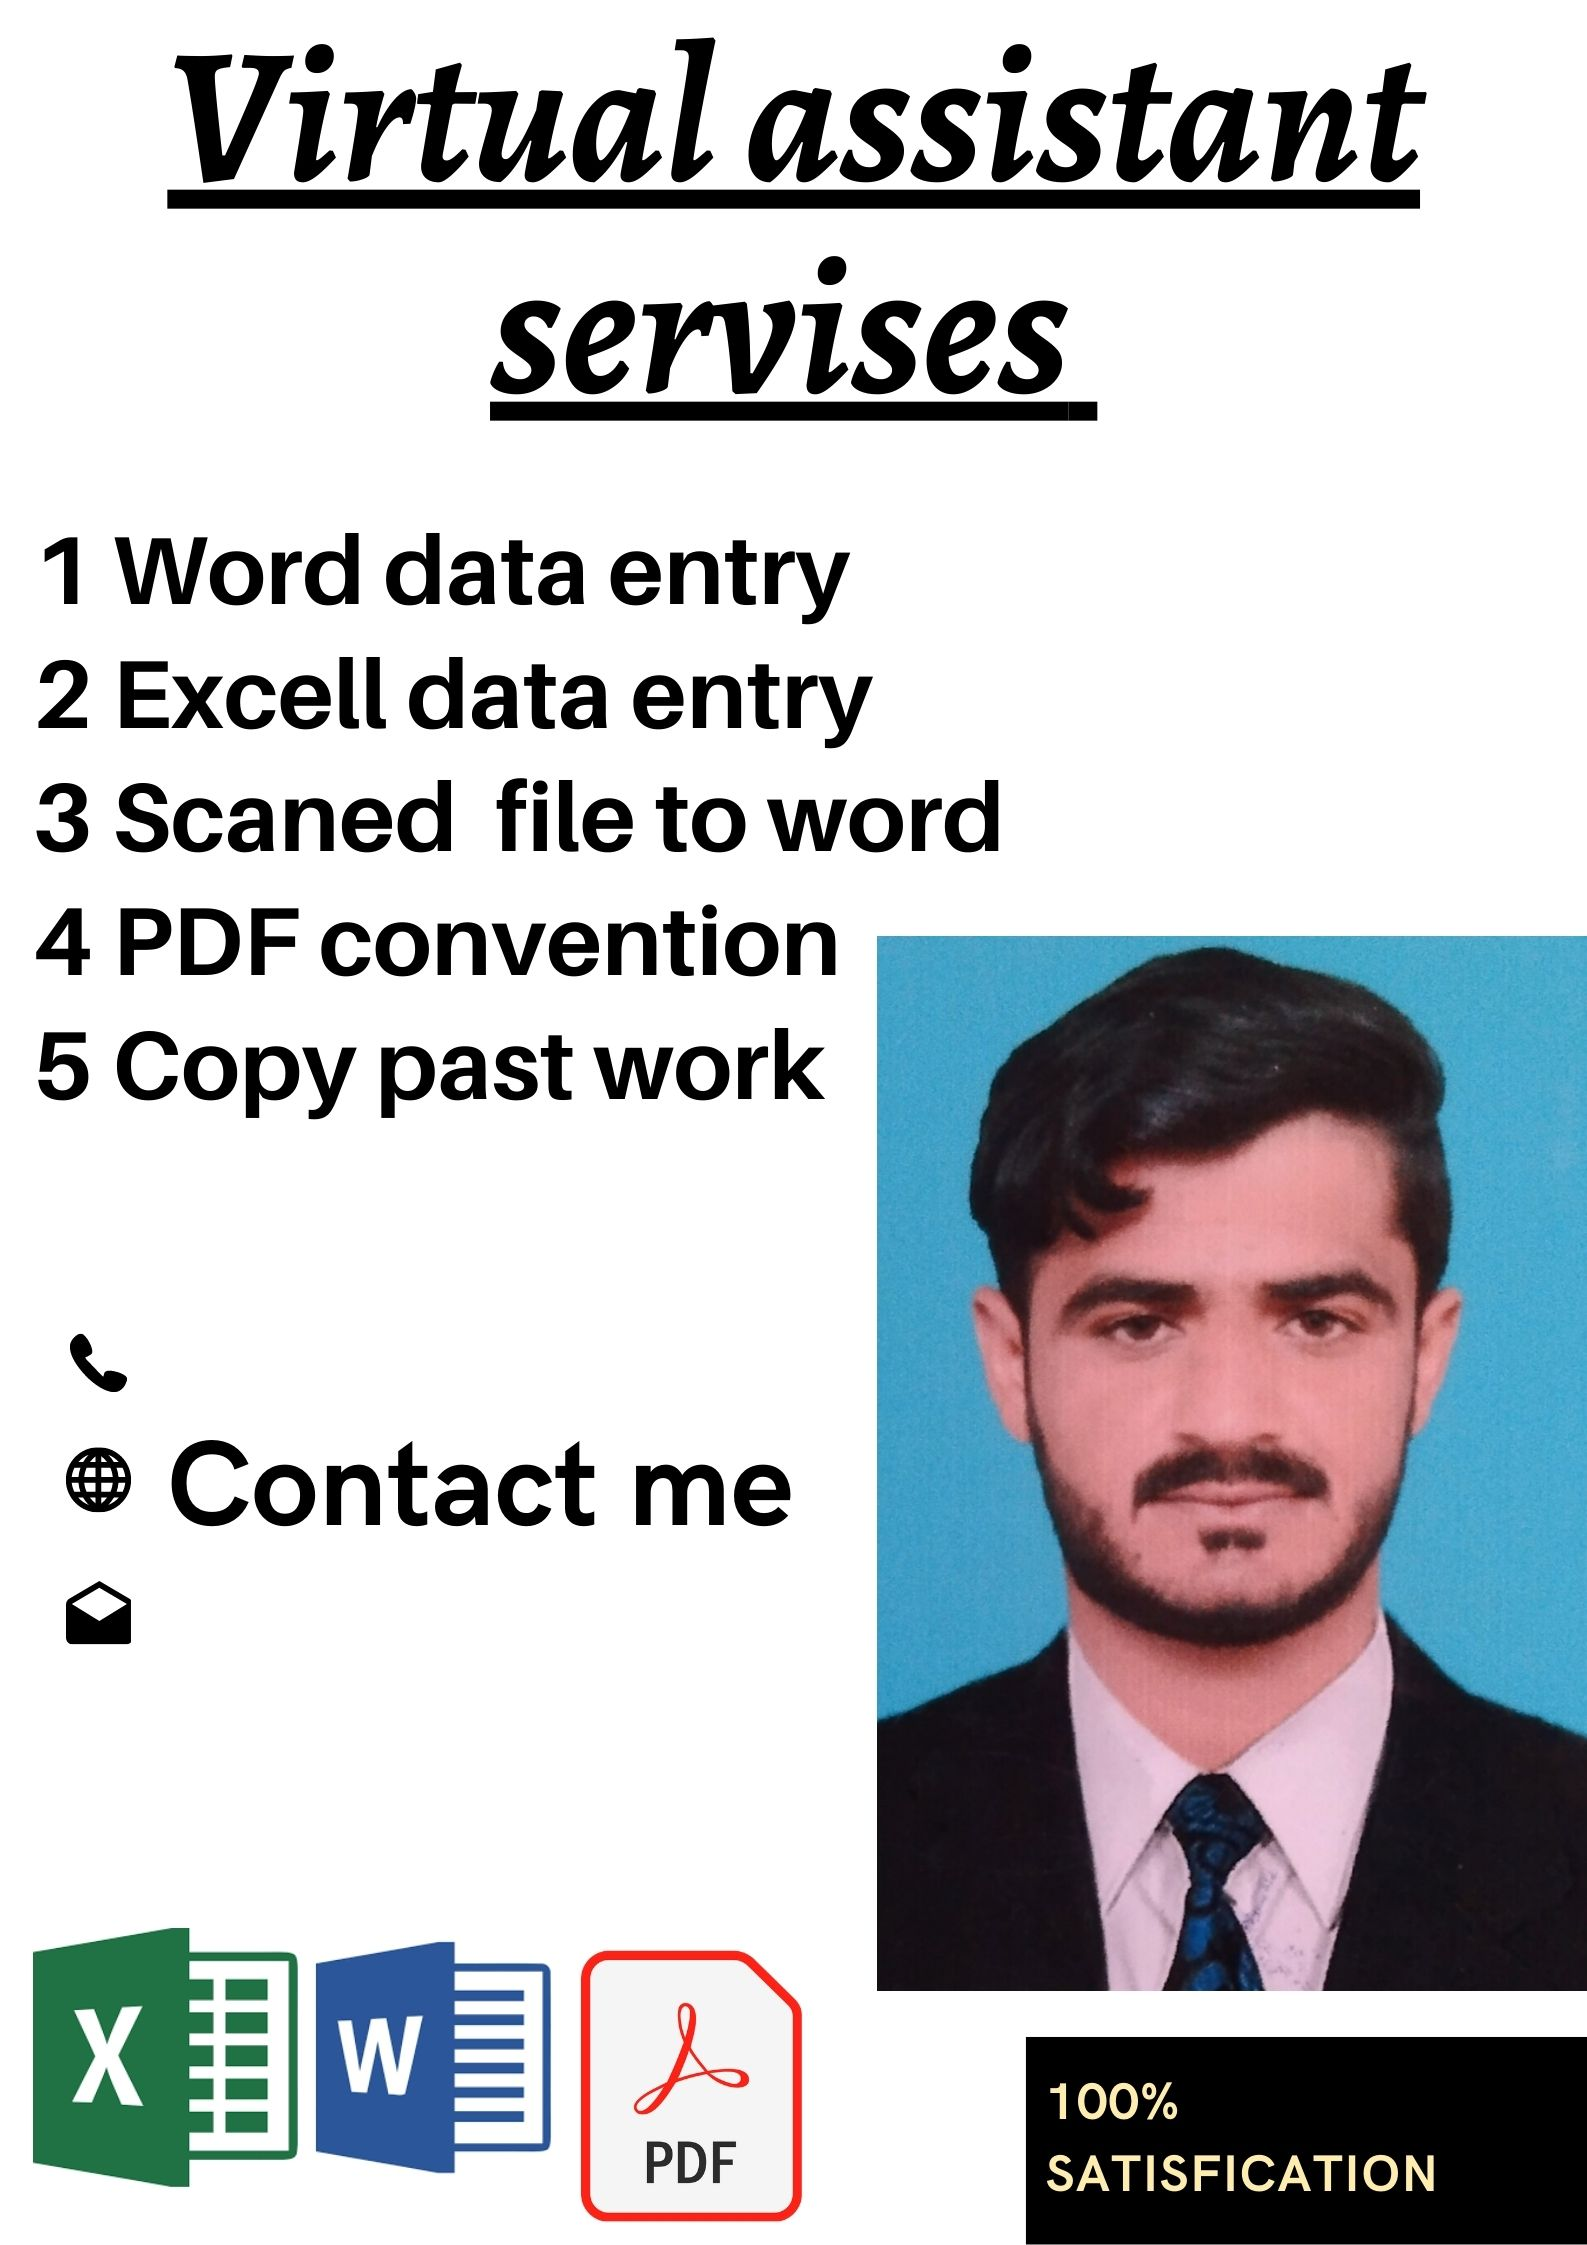 im expert in computer and data entry and have expriece in social media marketing and translations